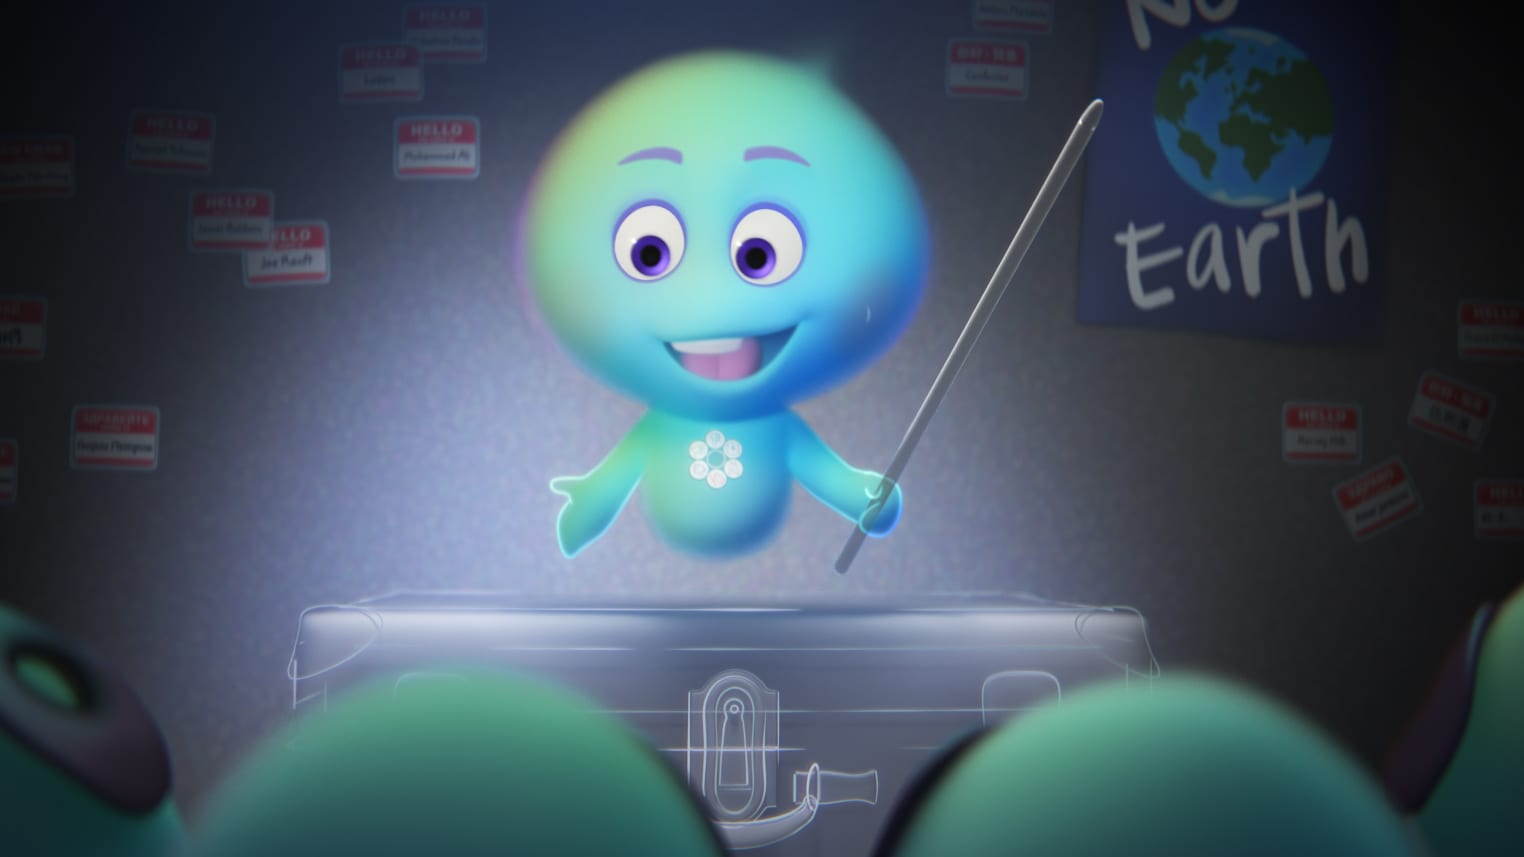 """In Pixar Animation Studios' """"22 vs. Earth,"""" new soul 22 (voice of Tina Fey) defies the rules of The Great Before and refuses to go to Earth, enlisting other new souls in her attempt at rebellion. Set before the events of Disney and Pixar's """"Soul,"""" """"22 vs. Earth"""" is directed by Kevin Nolting and produced by Lourdes Alba. © 2021 Disney/Pixar. All Rights Reserved."""